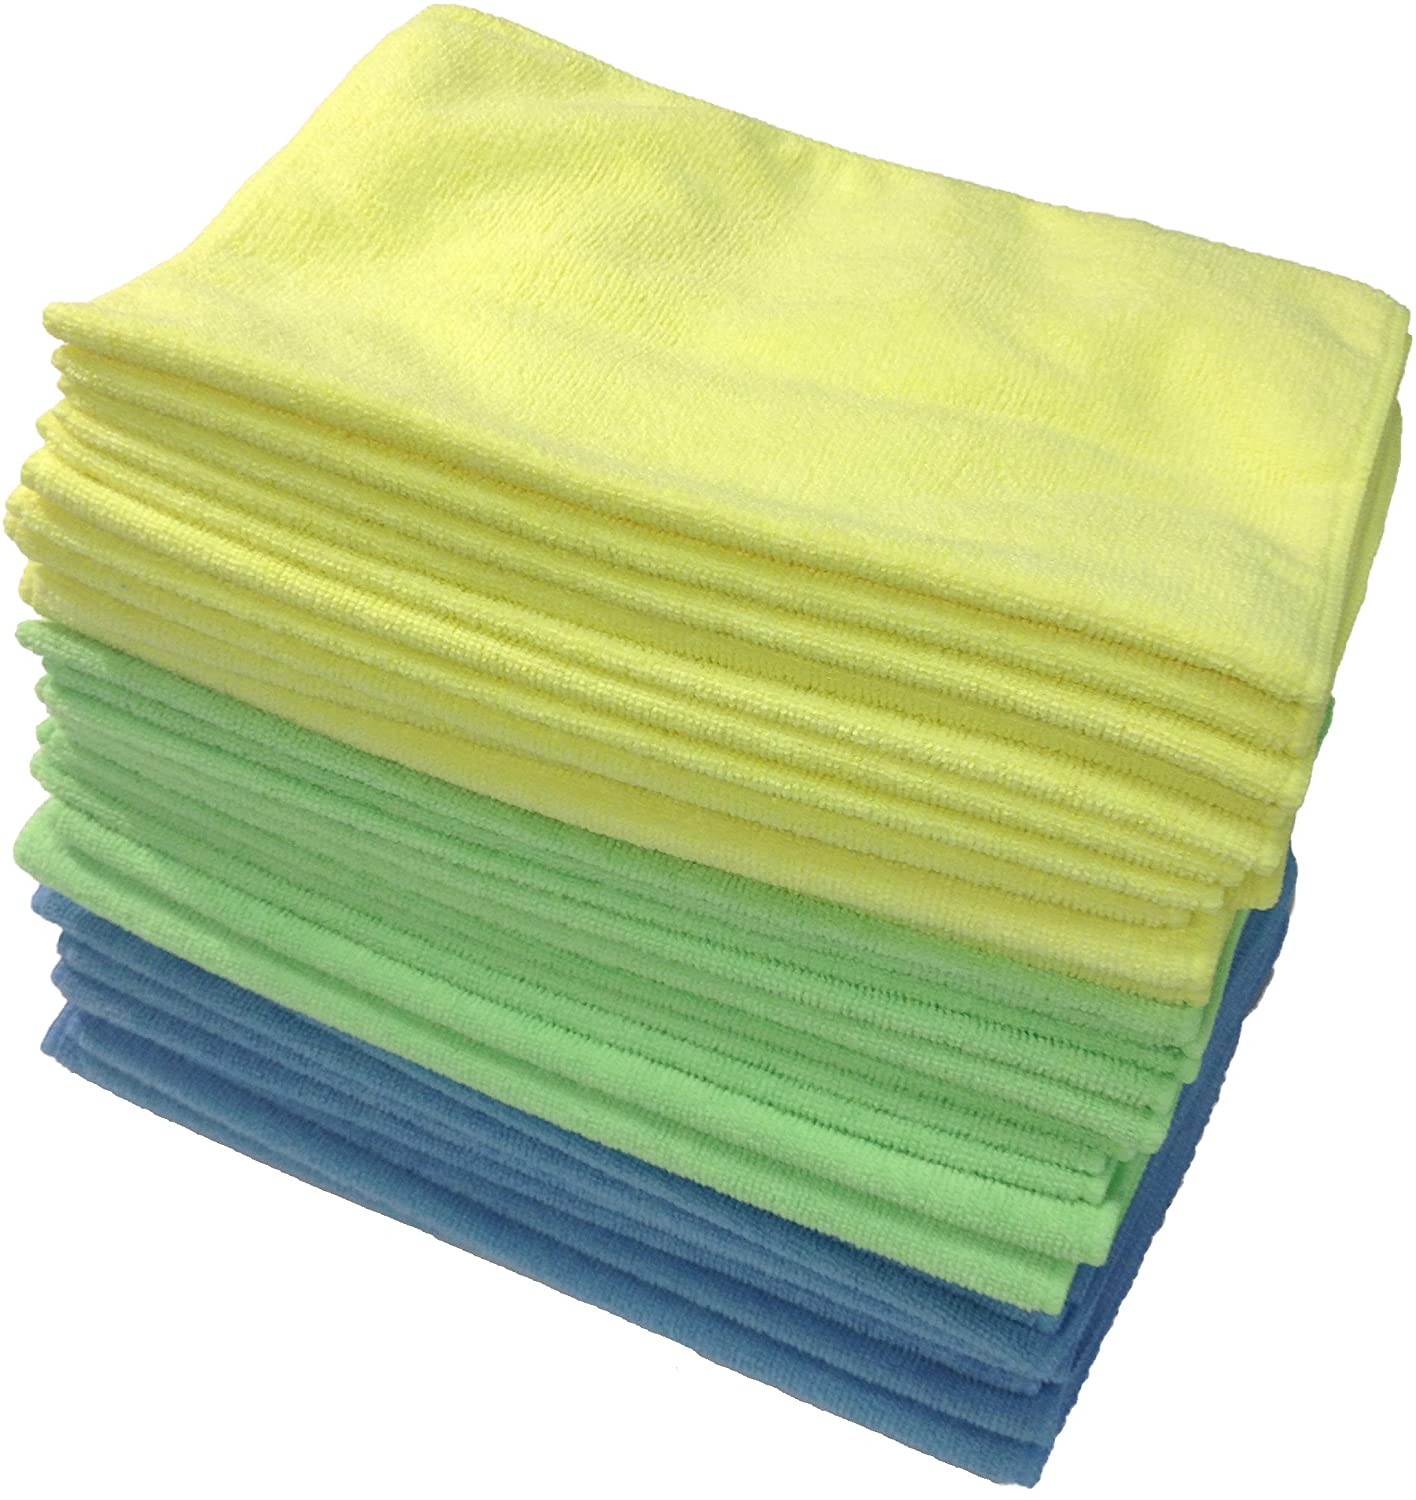 Grab a pack of microfiber cloths. They're useful all around the house.